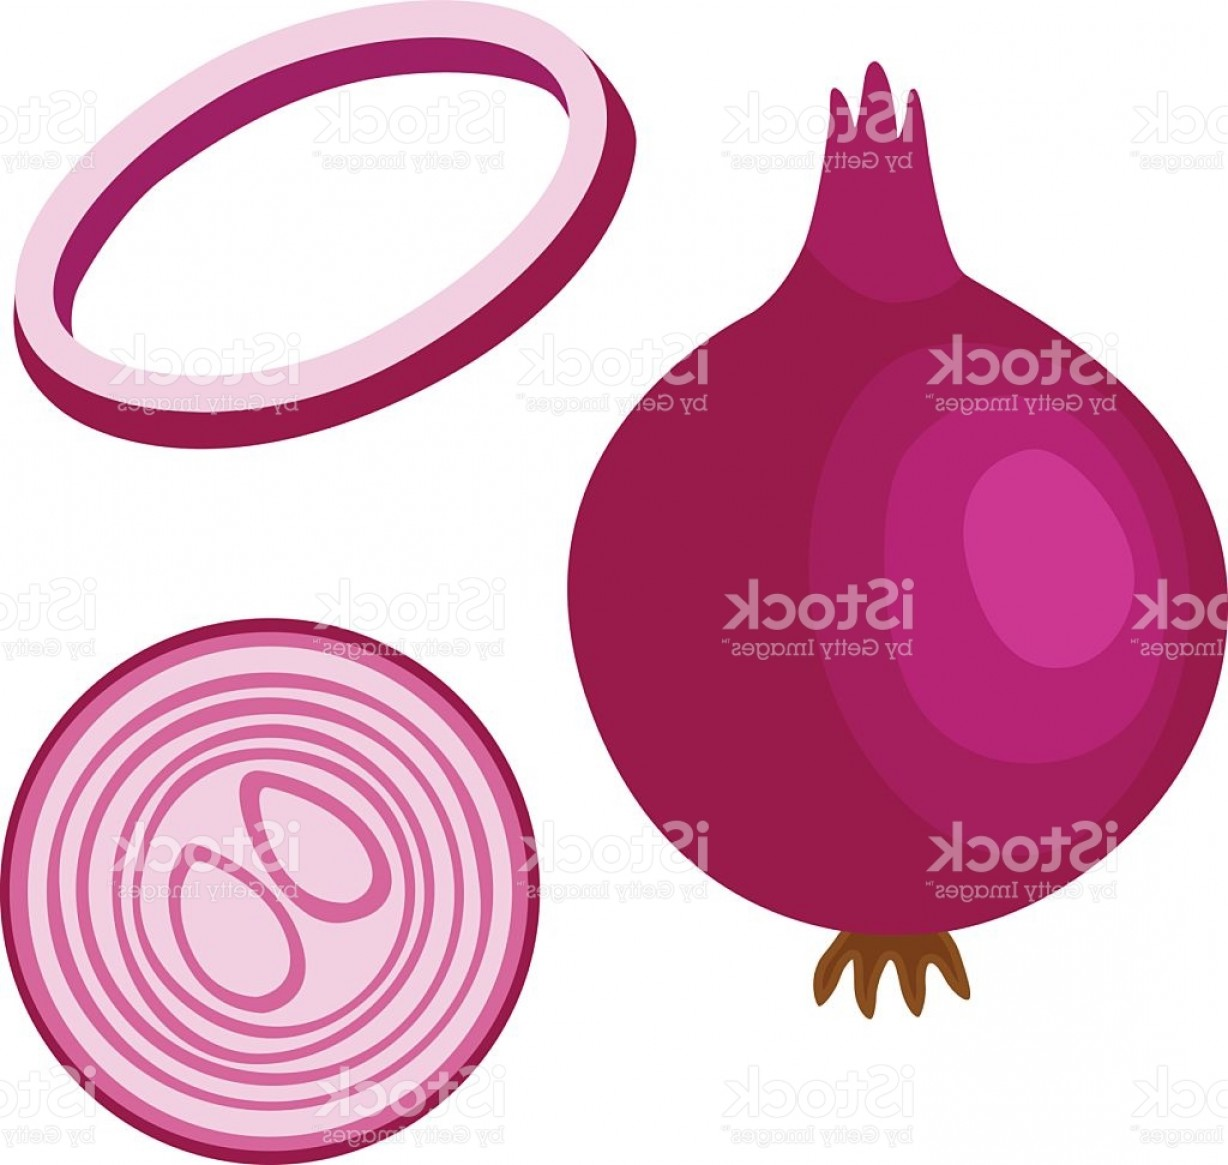 Onion Vector: Onion Illustration Set Of Sliced Chopped Red Onion Gm